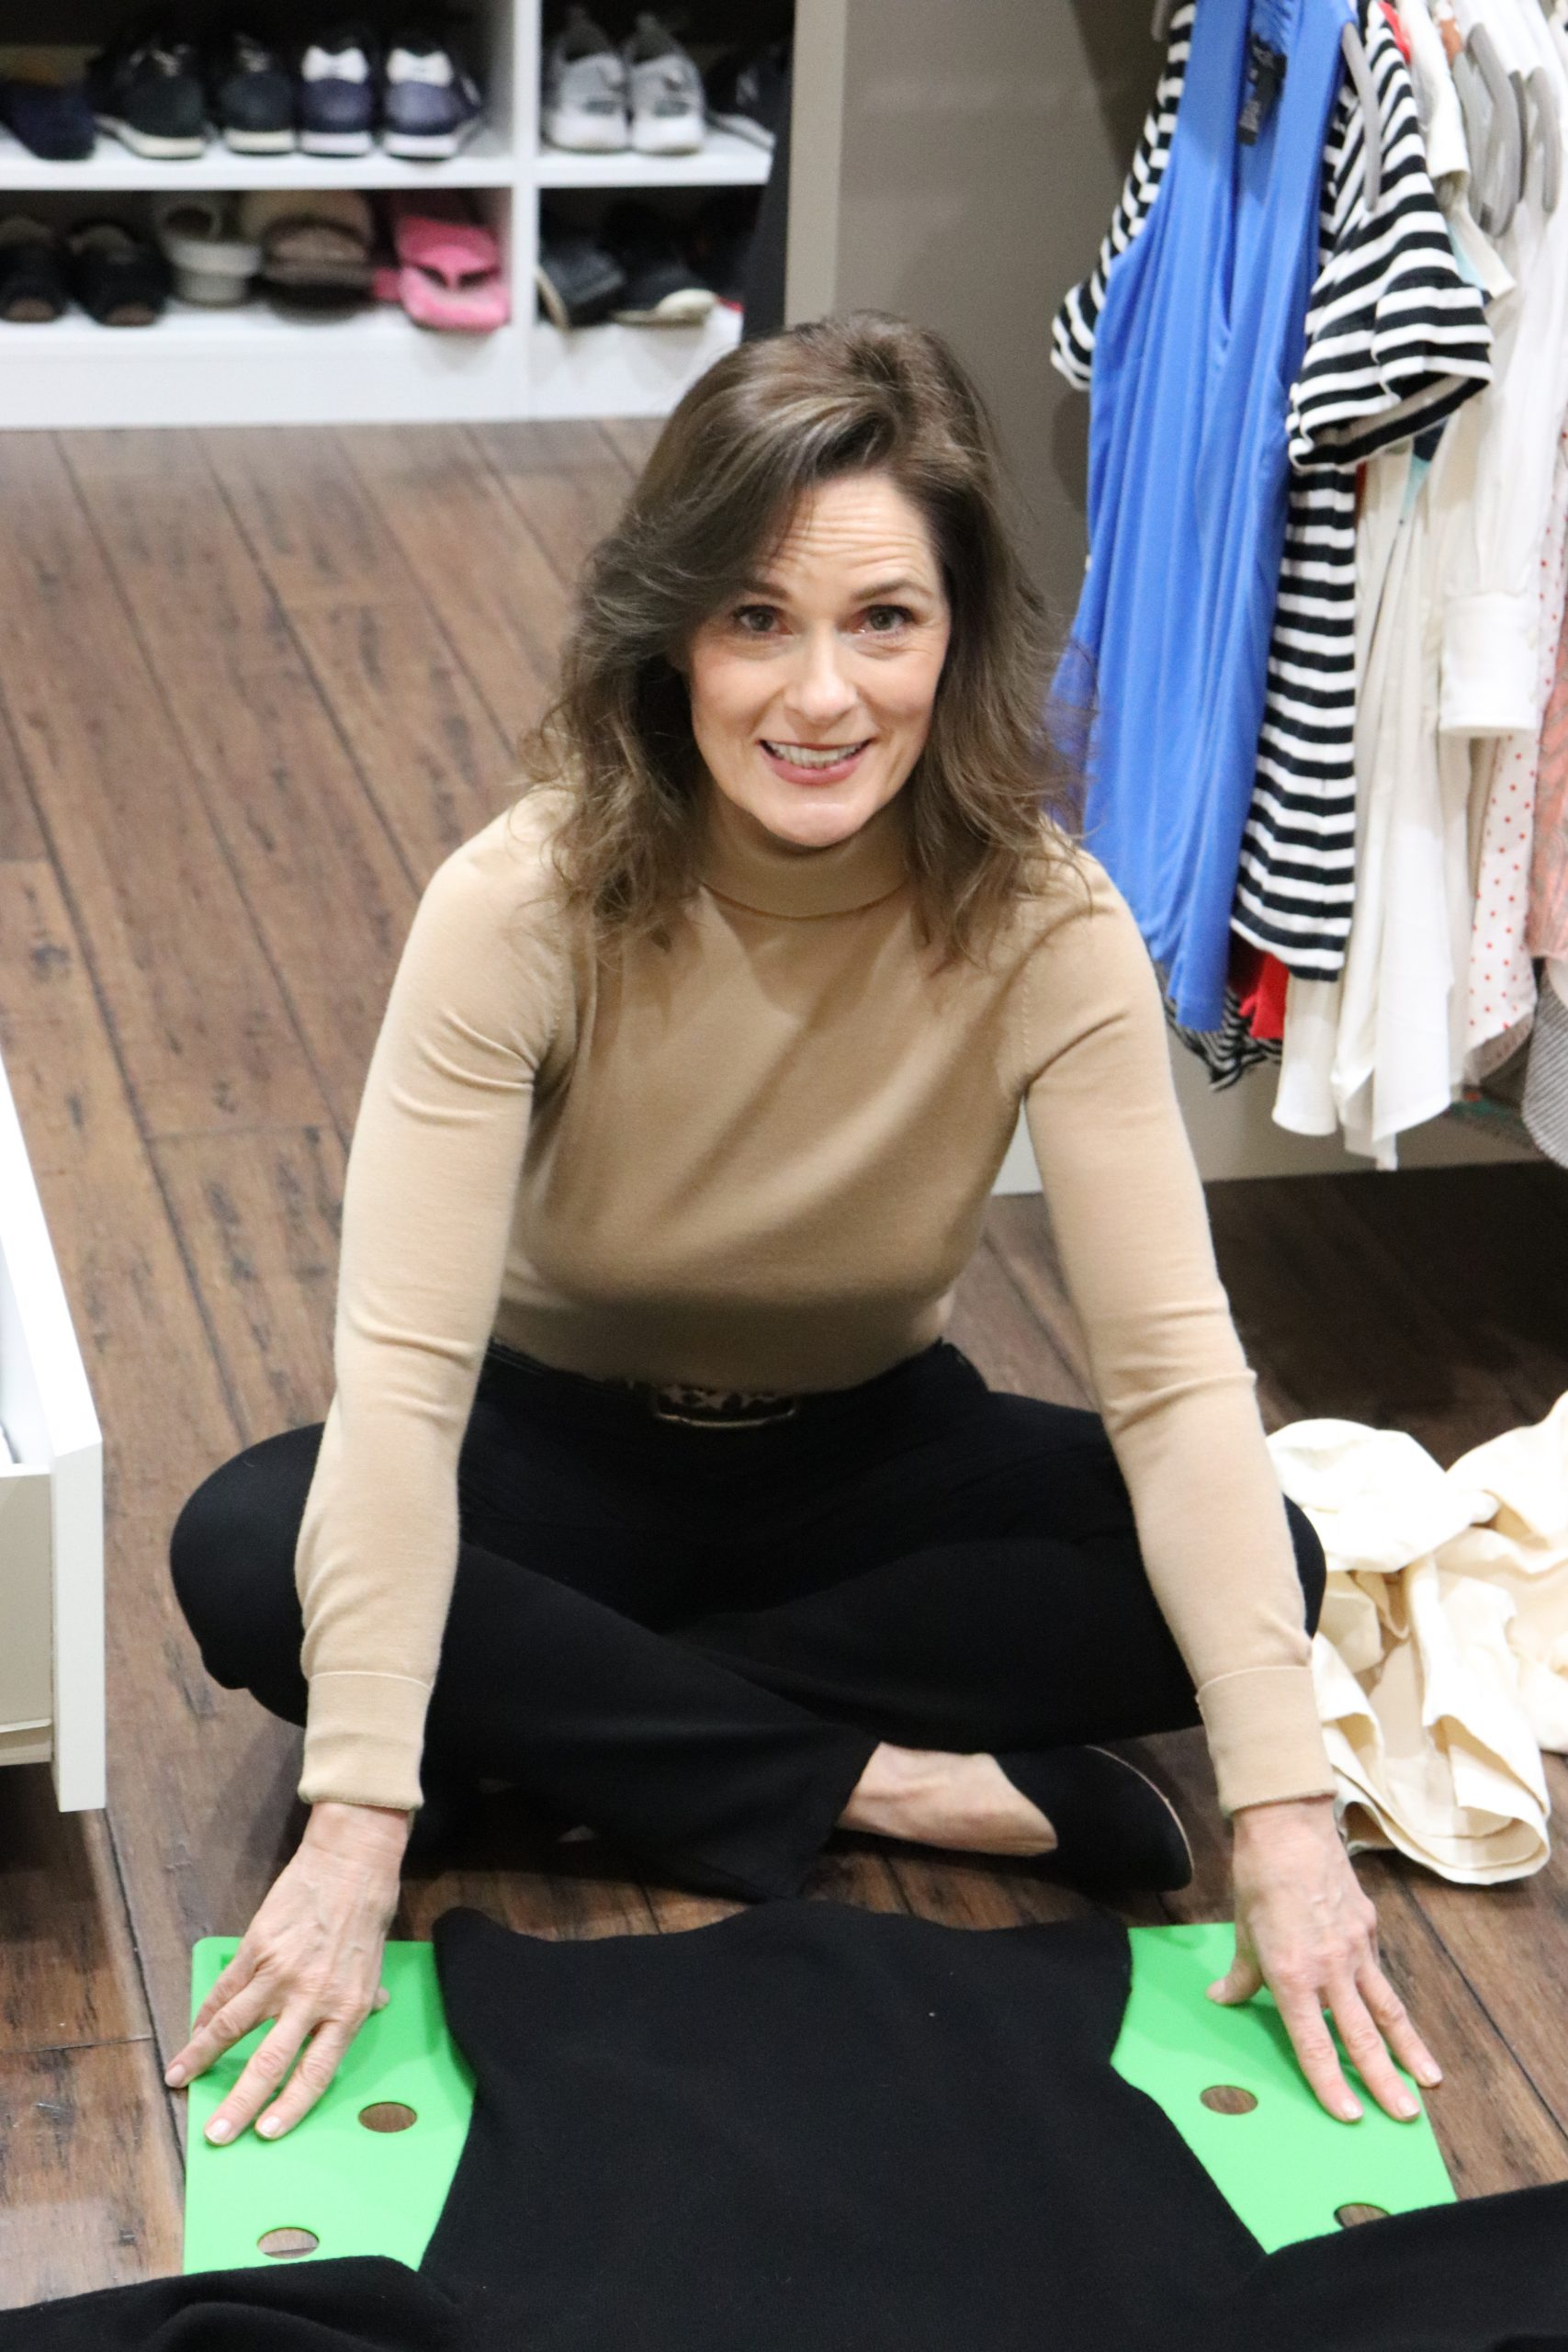 woman over 50 wearing a camel cashmere turtleneck and black jeans sitting on the floor of a closet folding a sweater with a plastic garment folder to demonstrate cashmere cleaning and storage love to your sweaters